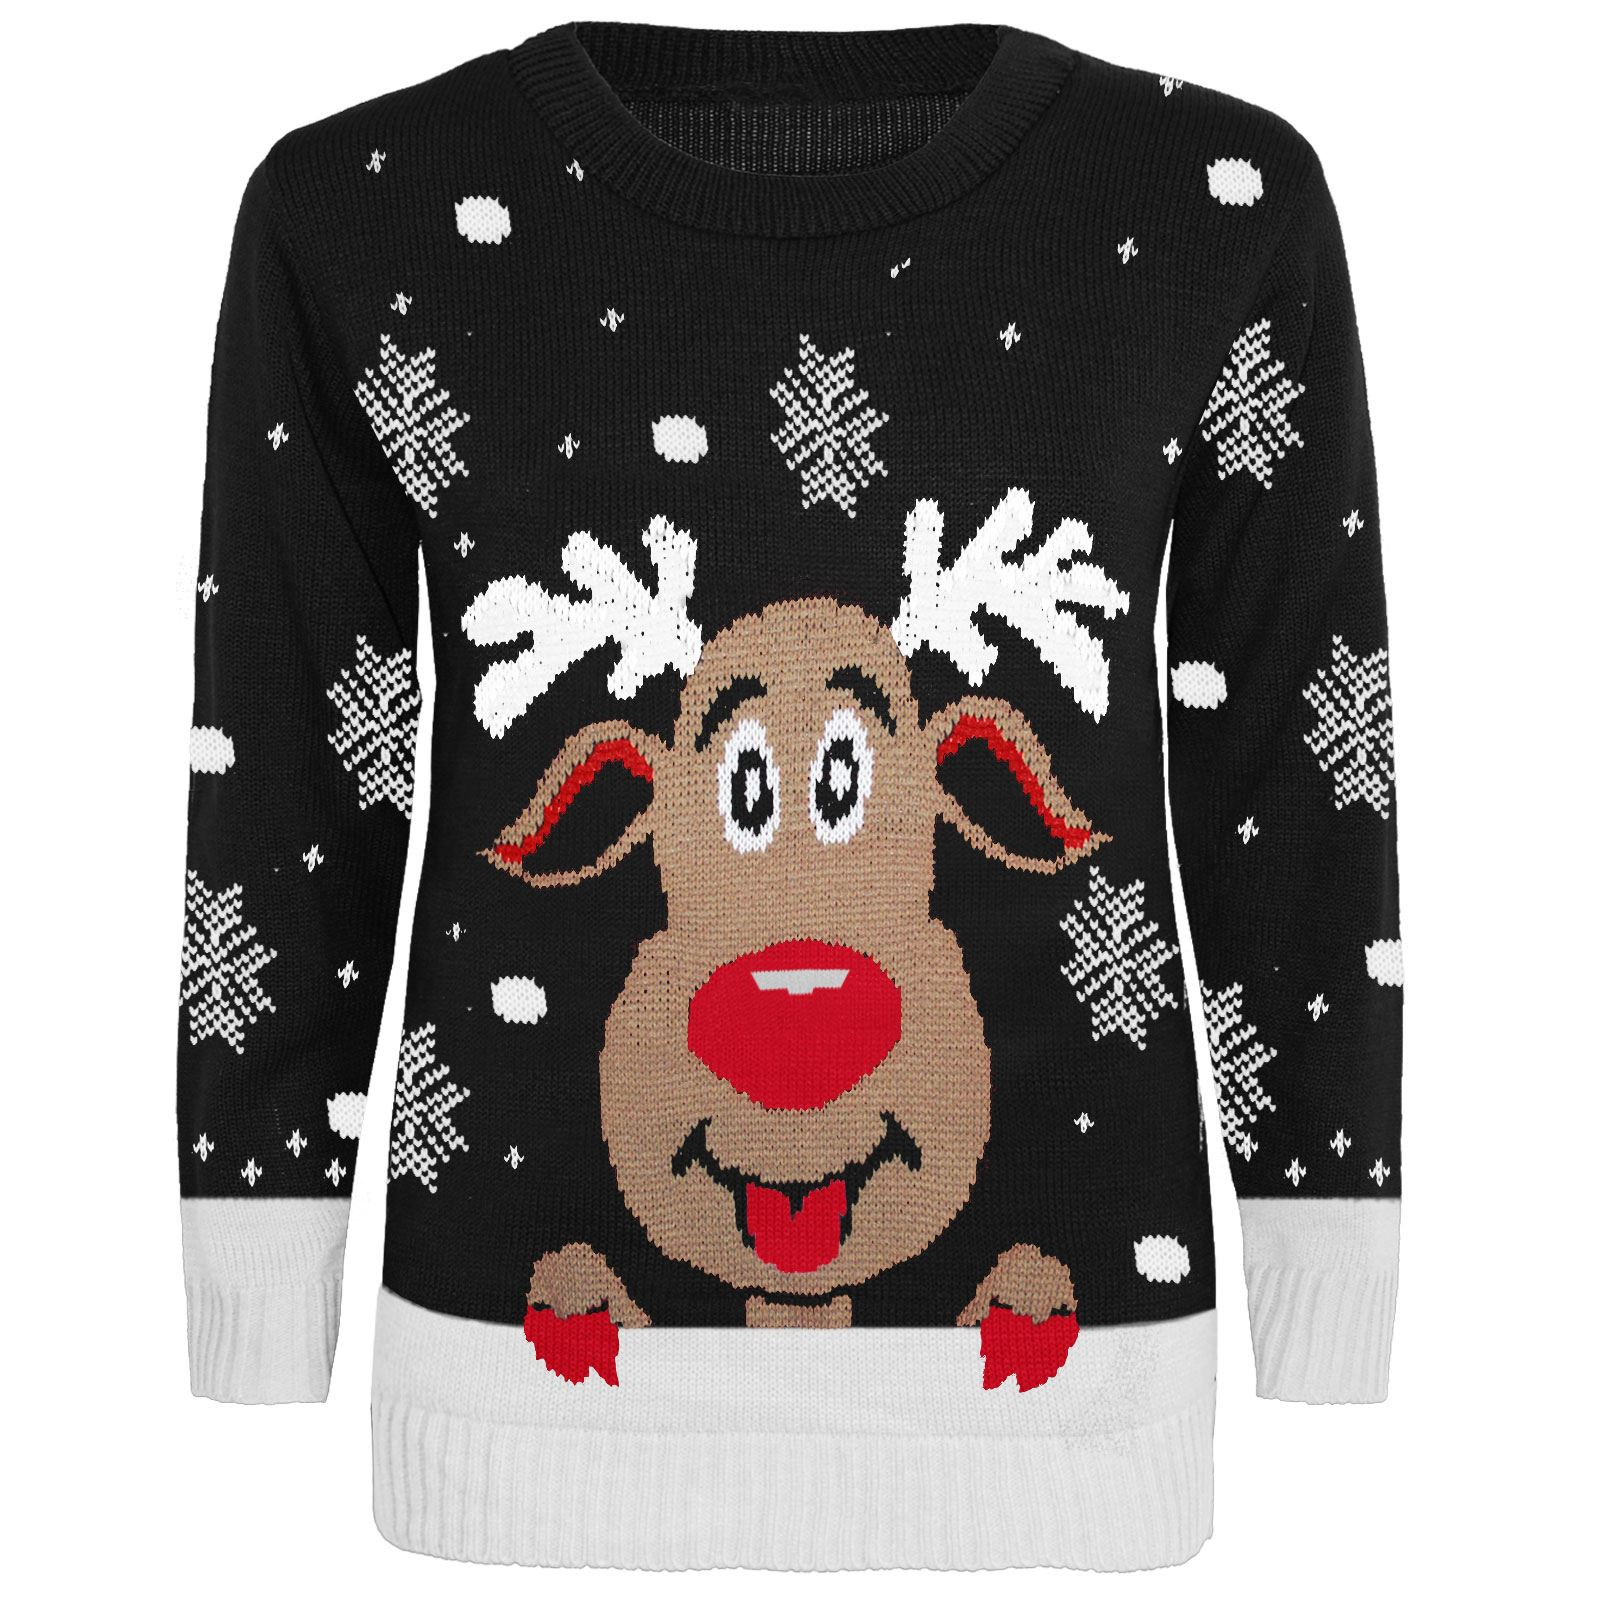 Olaf Christmas Jumper Knitting Pattern : KIDS CHILDREN FROZEN OLAF CHRISTMAS XMAS VINTAGE KNITTED JUMPER TOP 3-13 YEAR...